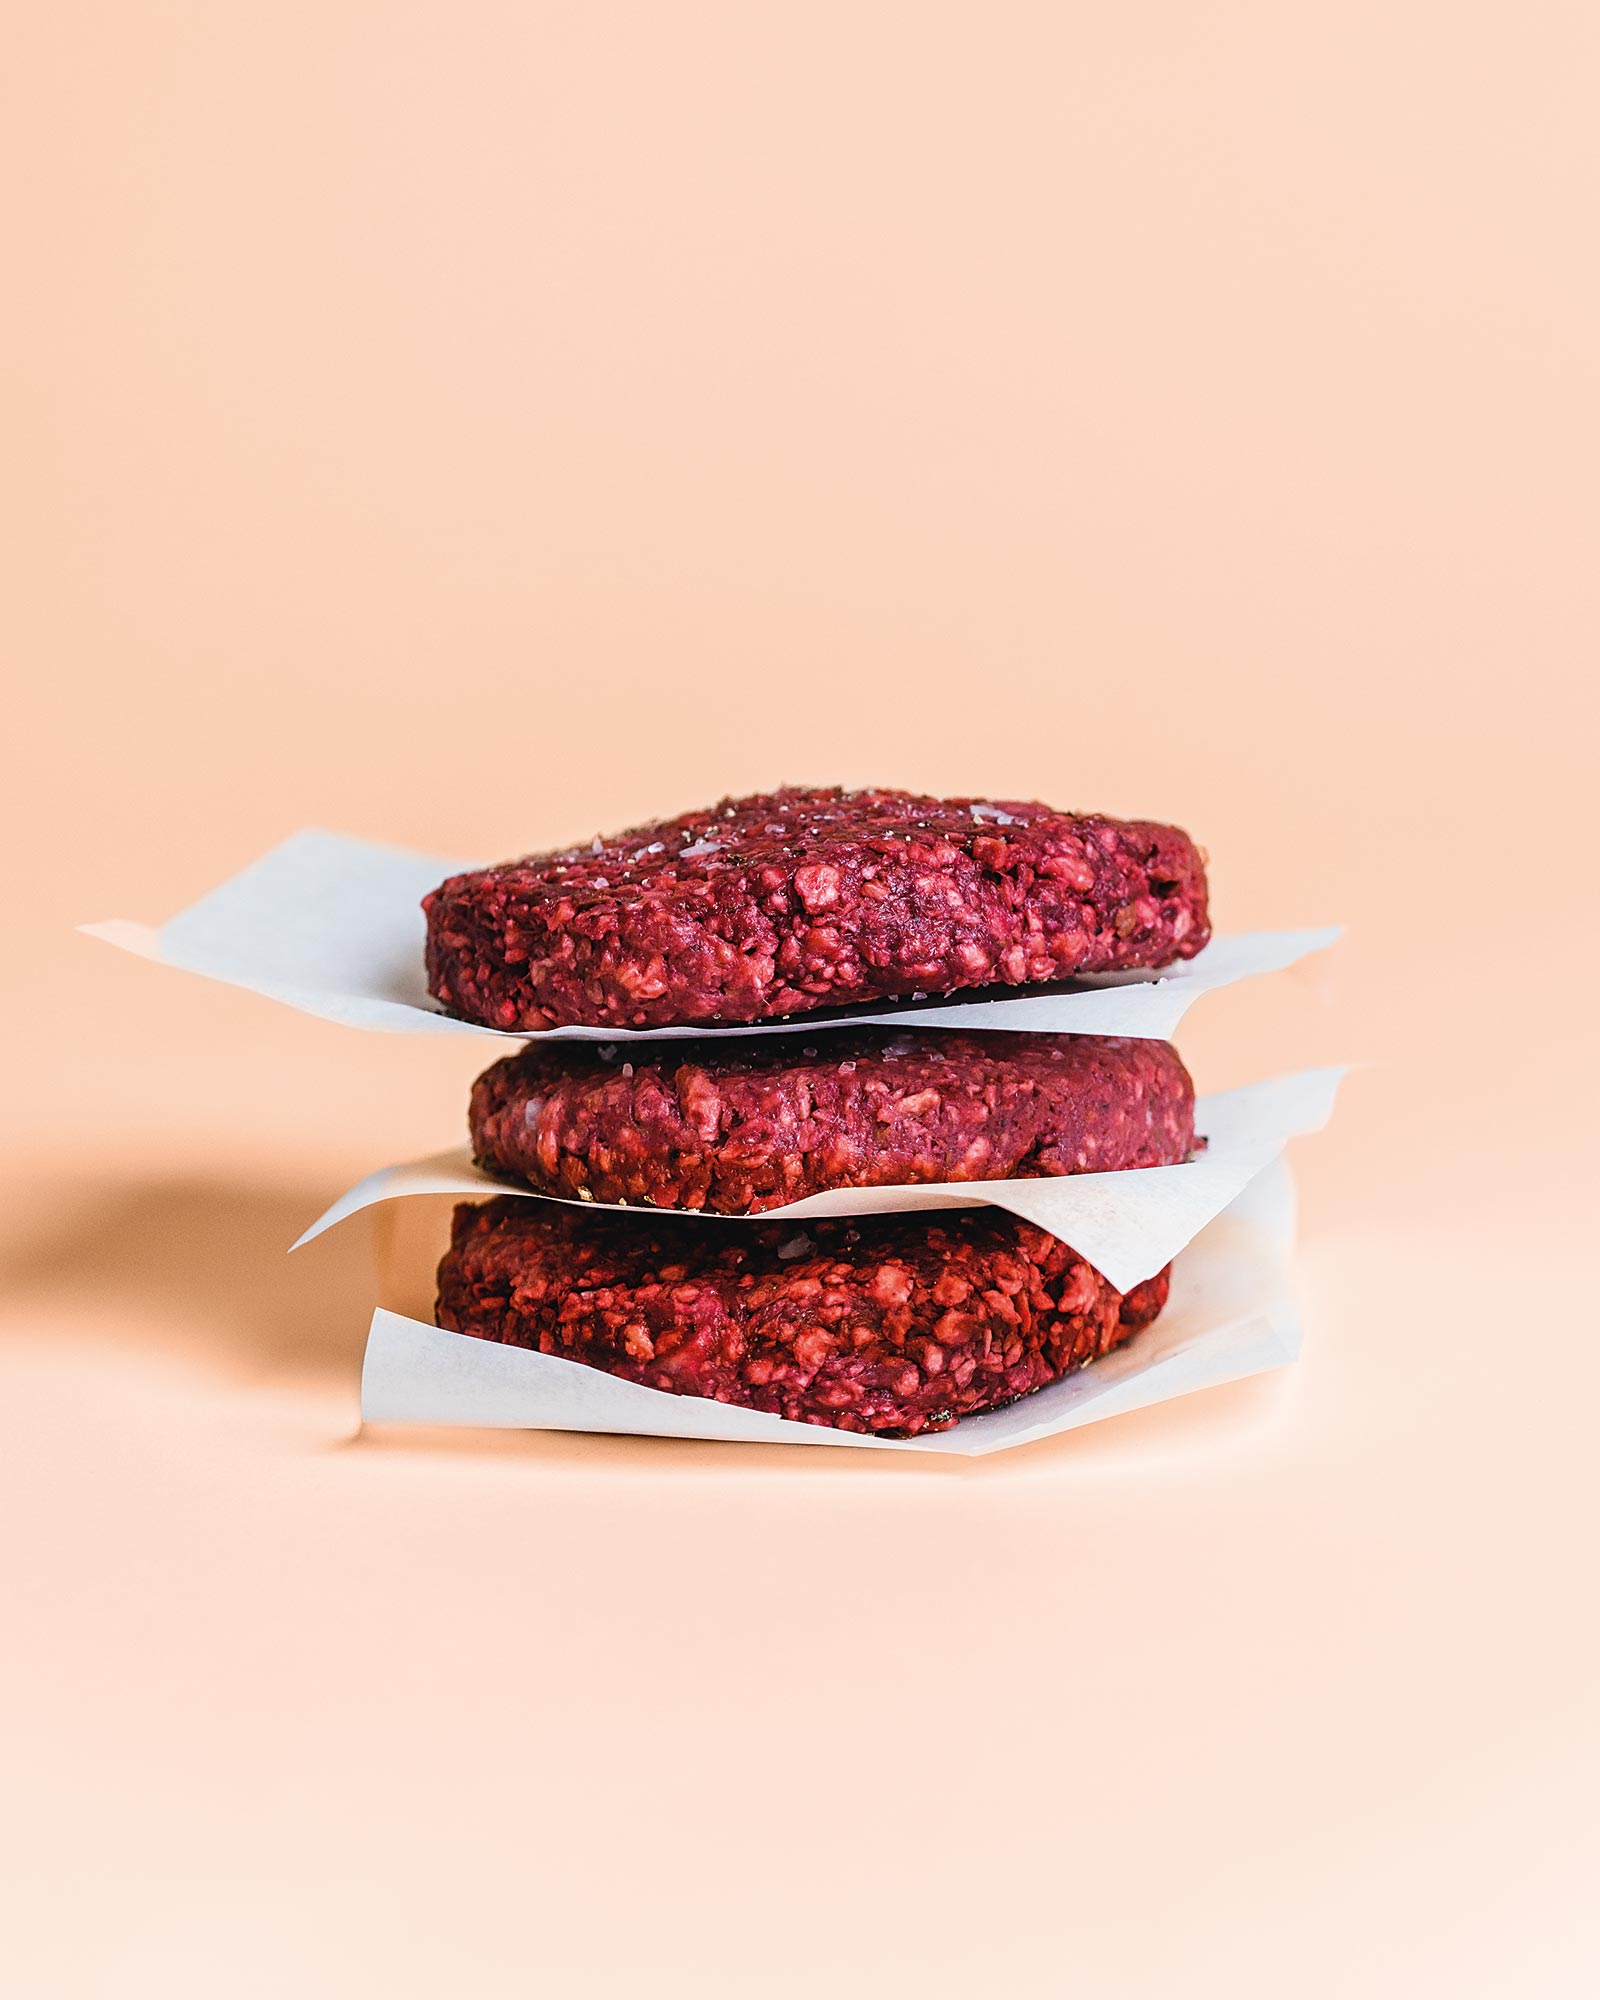 Plant-based Beyond Possible Burger – Recipe by Eat This! for Antagonist